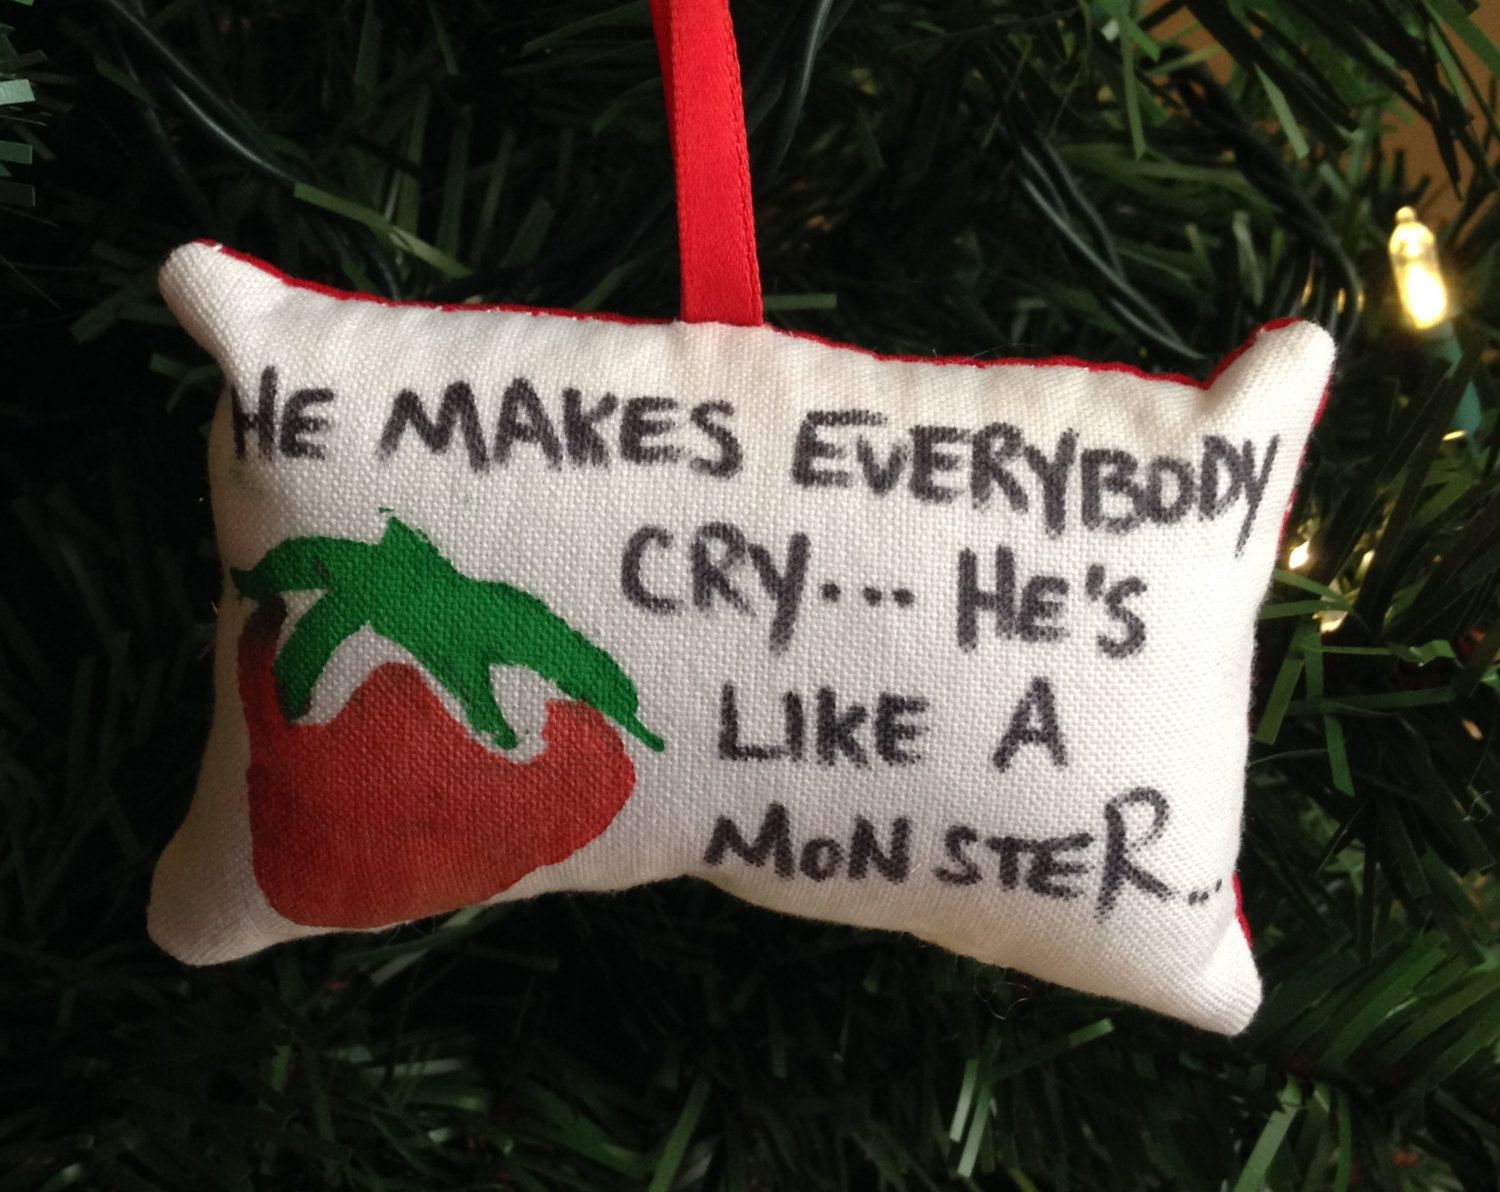 Strawberry christmas ornaments - Kaylee Strawberry He Makes Everybody Cry He S Like A Monster Christmas Ornament Firefly Serenity Browncoat